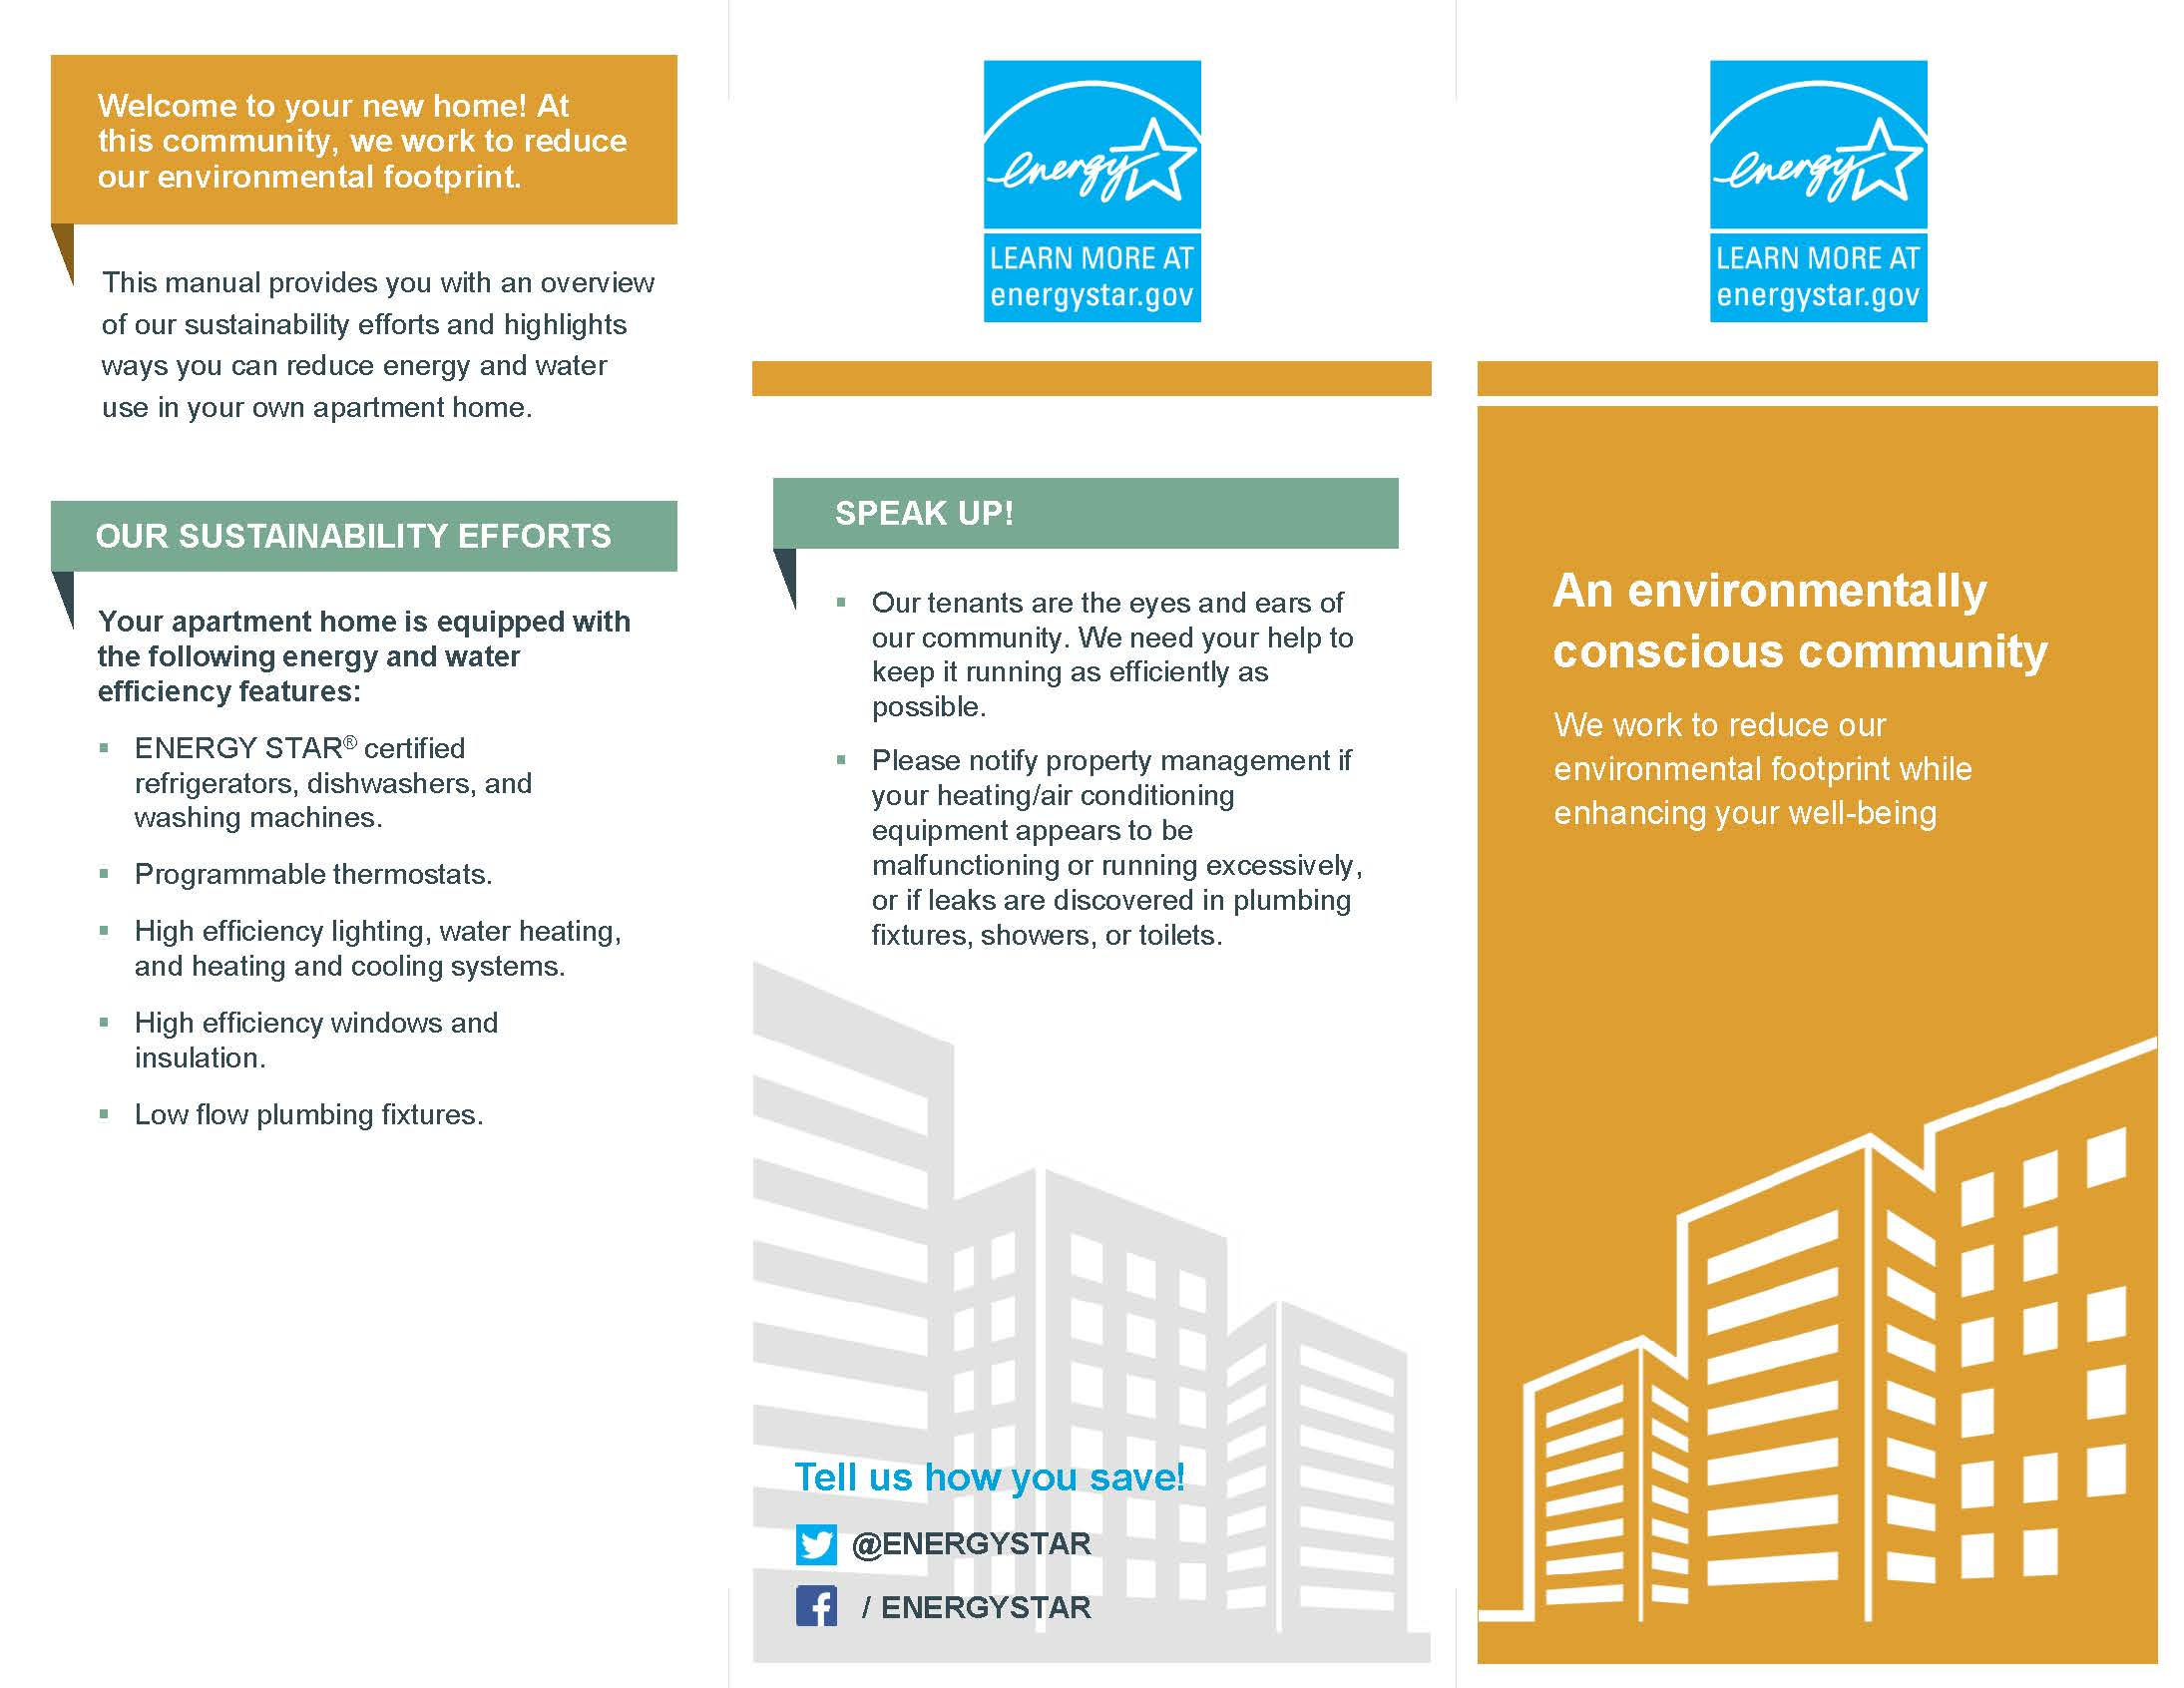 Sample environmental brochure for noncertified apartment property